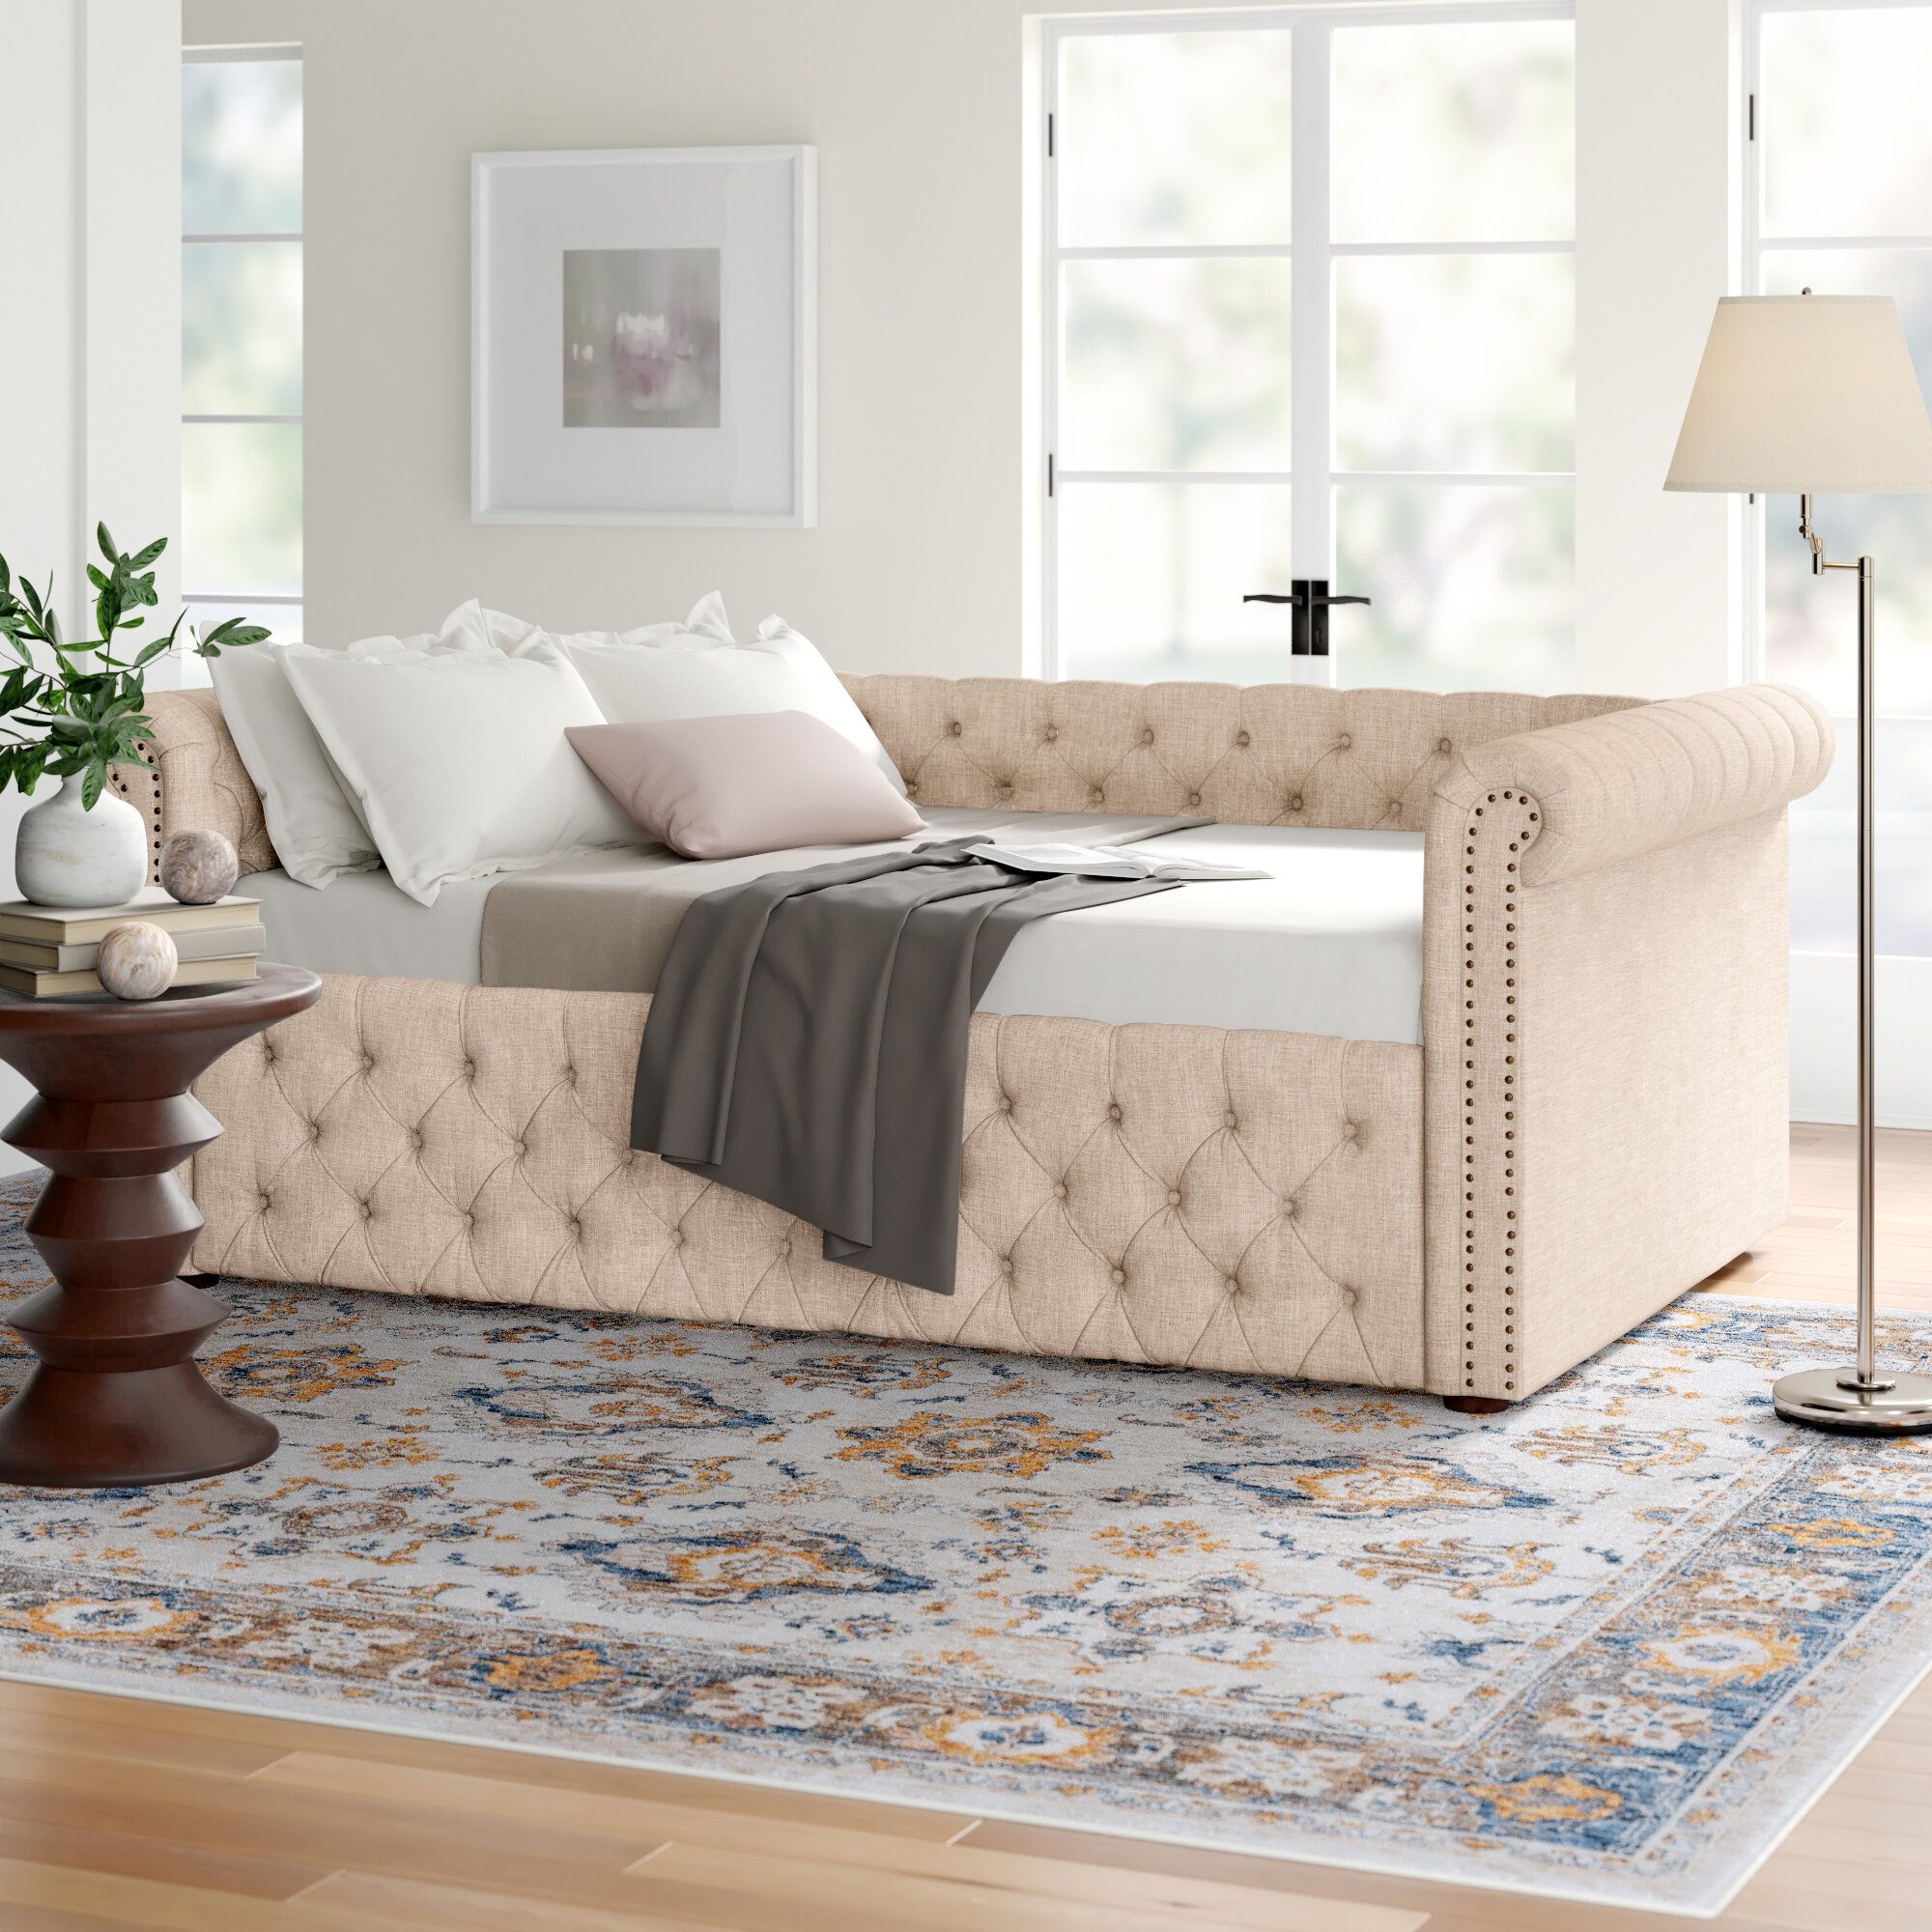 - Hinsdale Full Size Daybed & Reviews Joss & Main